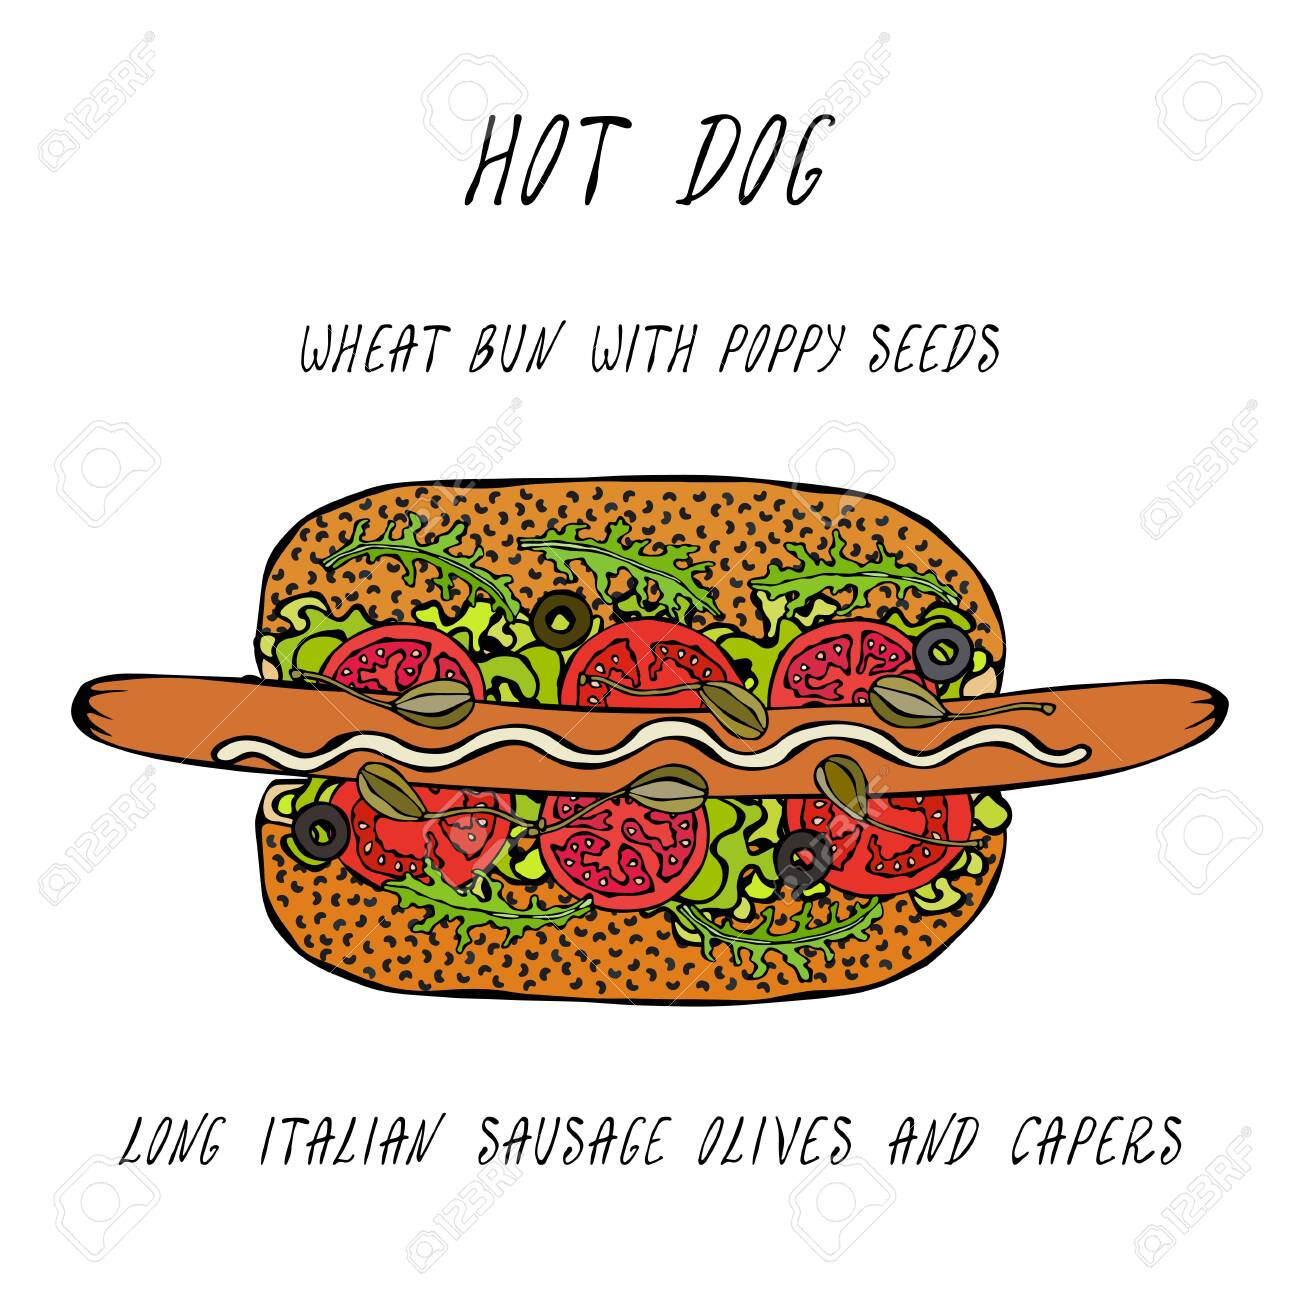 Hot Dog on a Bun with Poppy Seeds. Long Italian Sausage, Olives, Capers, Rocket, Lettuce Salad. Fast Food Collection. Realistic Hand Drawn High Quality Vector Illustration. Doodle Style - 115007716